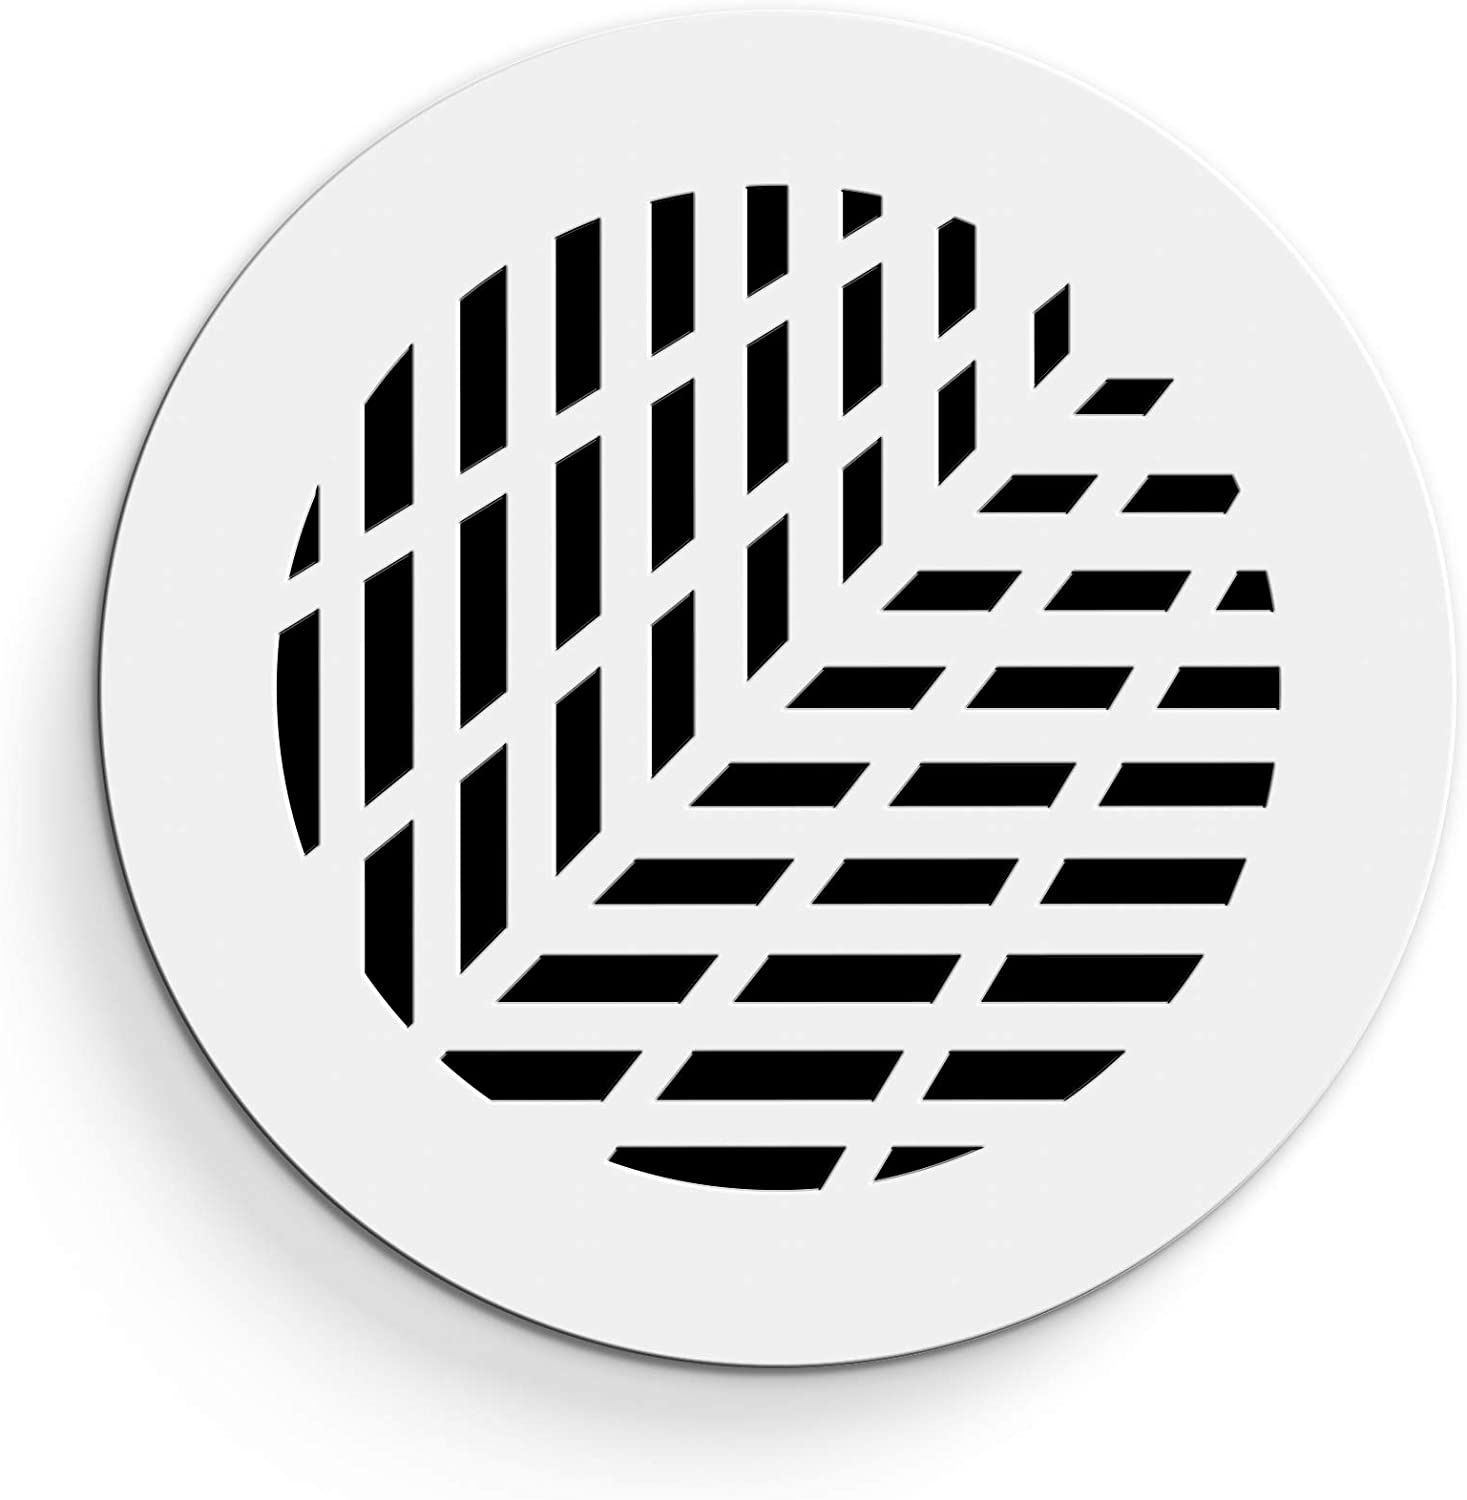 """SABA Air Vent Cover Grille - Acrylic Plexiglass 8"""" Round Duct Opening (10"""" Round Overall) White Finish Decorative Register Covers for Walls and Ceilings NOT for Floor USE, Vivian"""